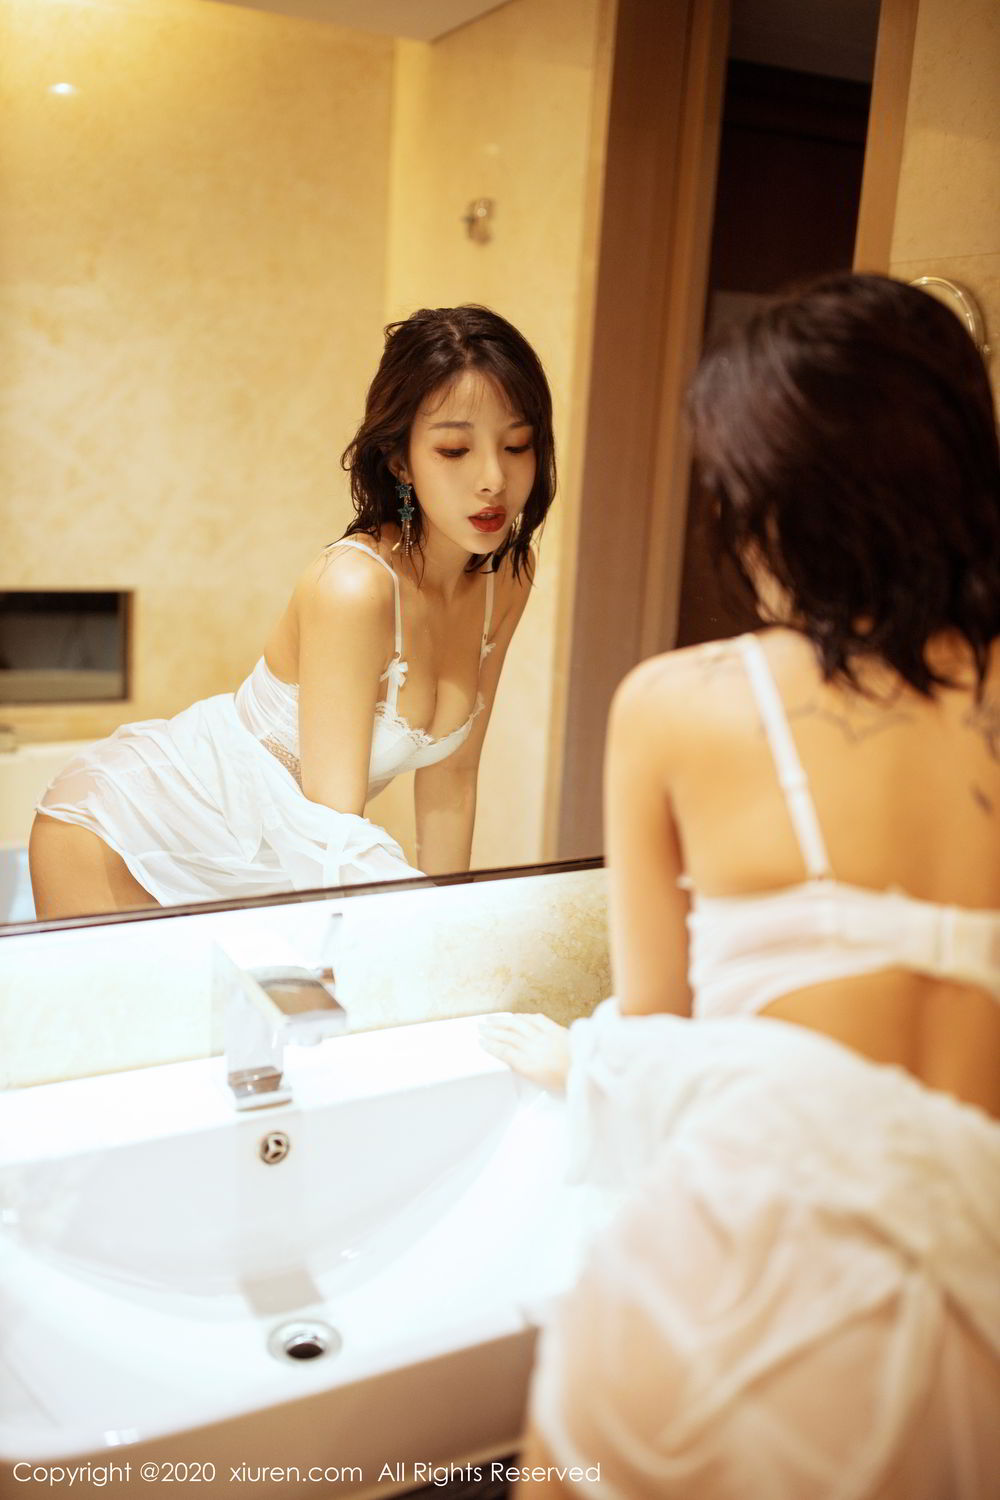 [XiuRen] Vol.2158 Chen Xiao Miao 2P, Bathroom, Chen Xiao Miao, Tall, Wet, Xiuren